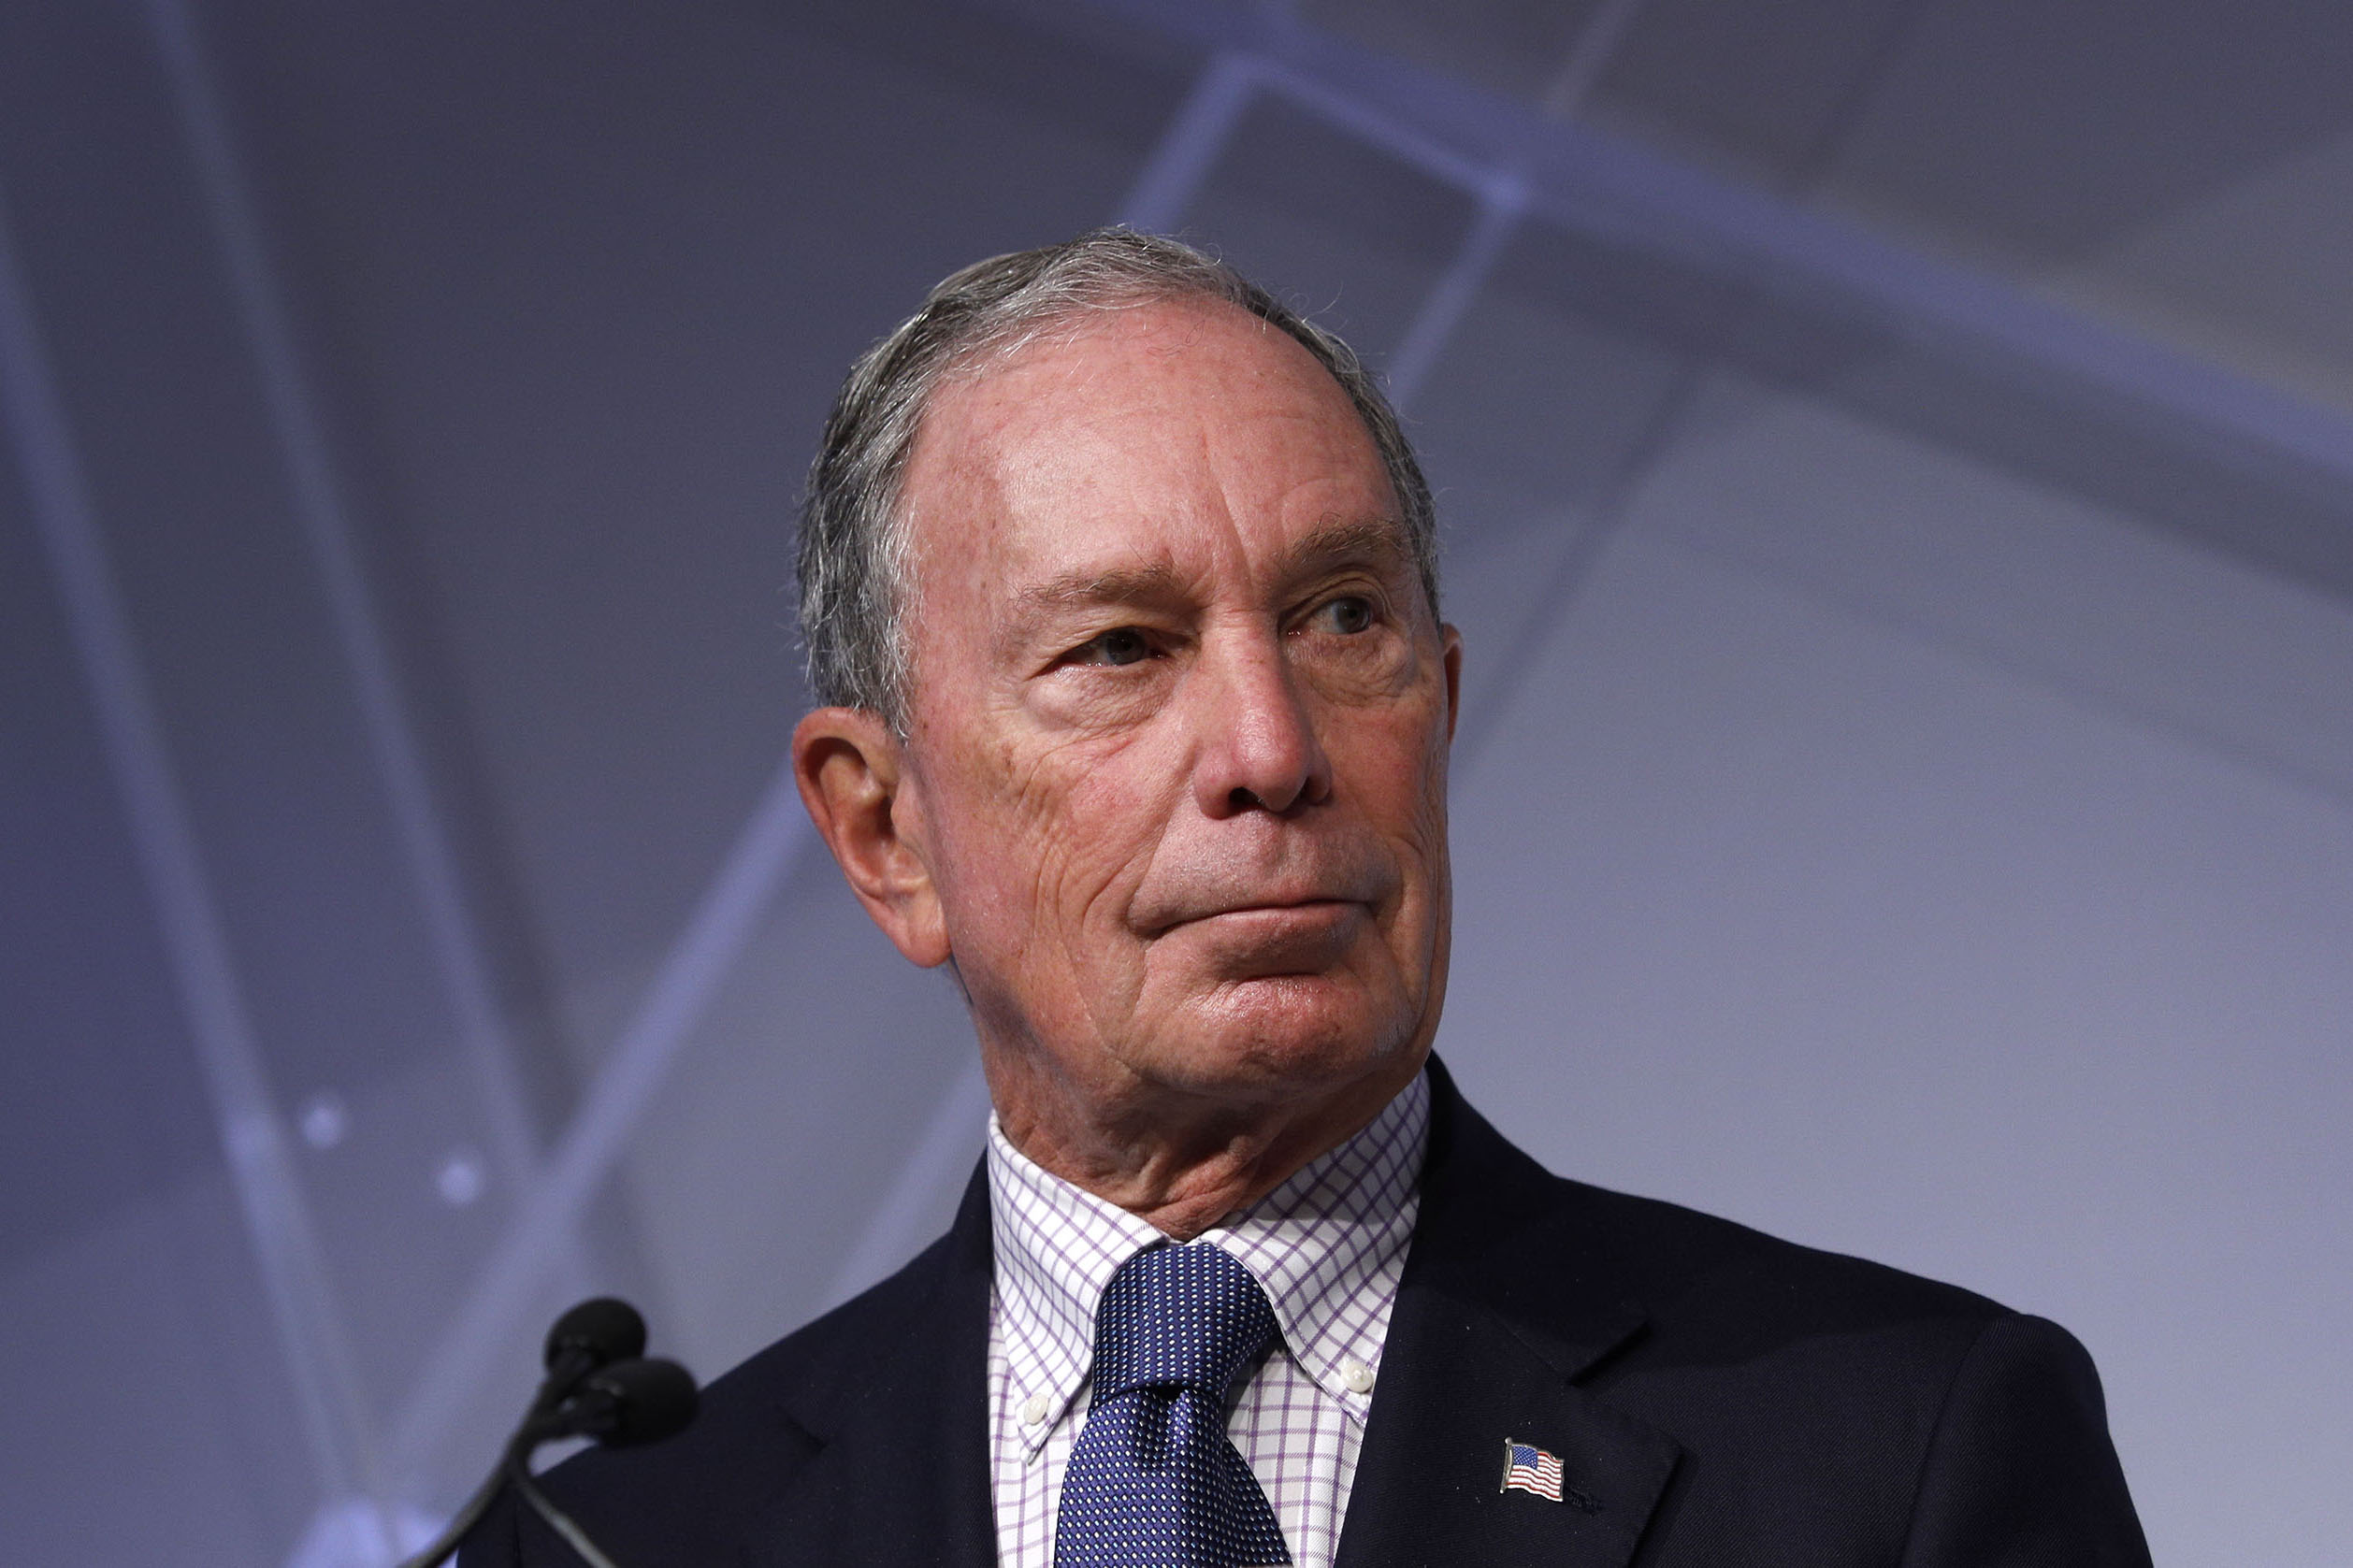 Michael Bloomberg, billionaire and alumnus of Johns Hopkins University, speaks at CityLab Detroit, a global city summit, on October 29, 2018 in Detroit, Michigan. (Photo by Bill Pugliano/Getty Images)